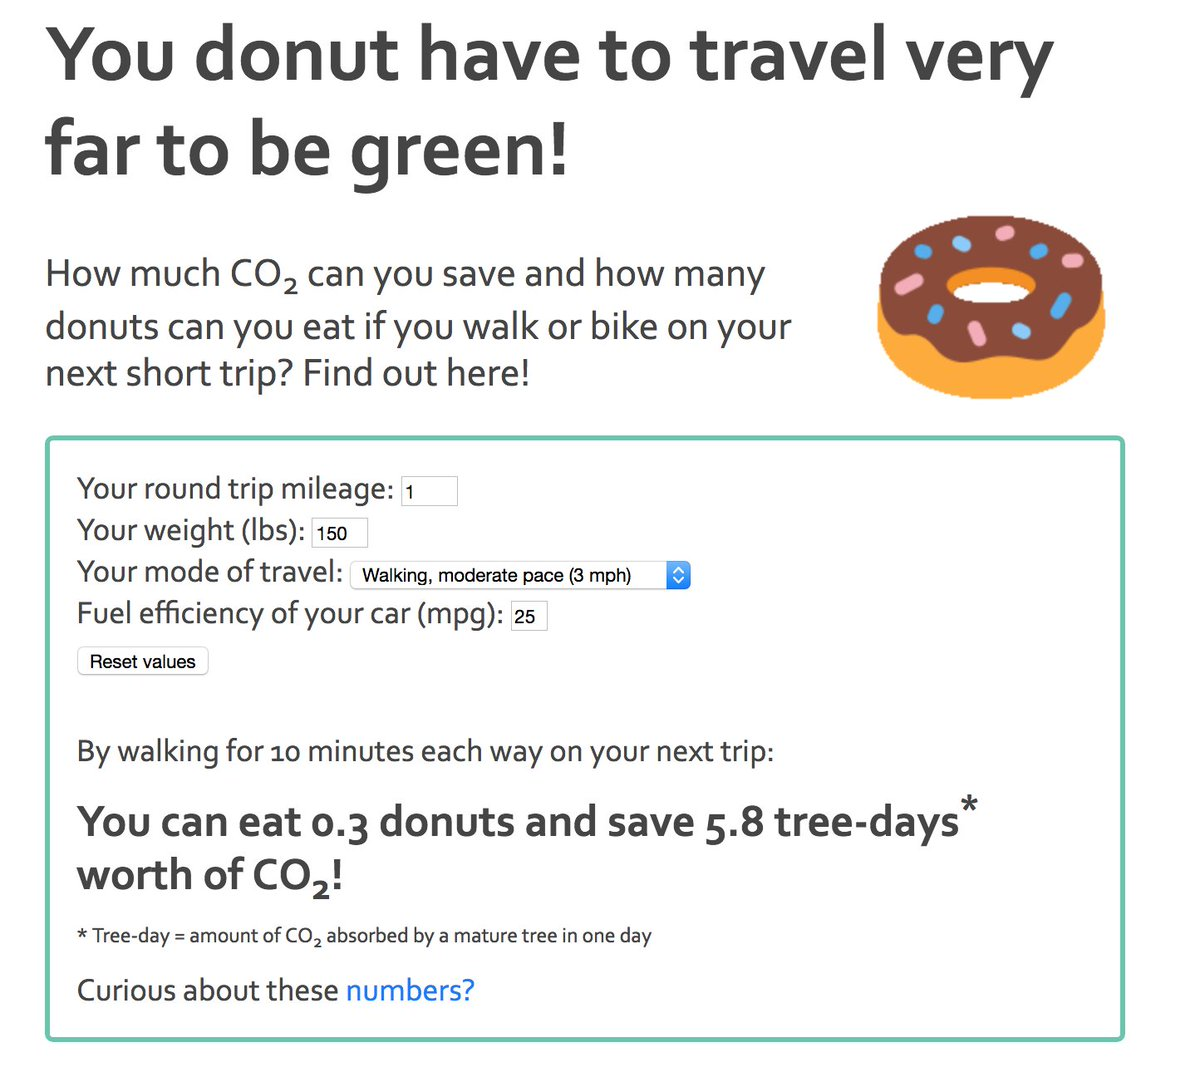 Co2 You Ll Save By Replacing A Short Car Trip With Walk Or Bike Ride Check It Out Here Http Www Pasadenacsc Org Donut Bikesgv Bikela Bikeca